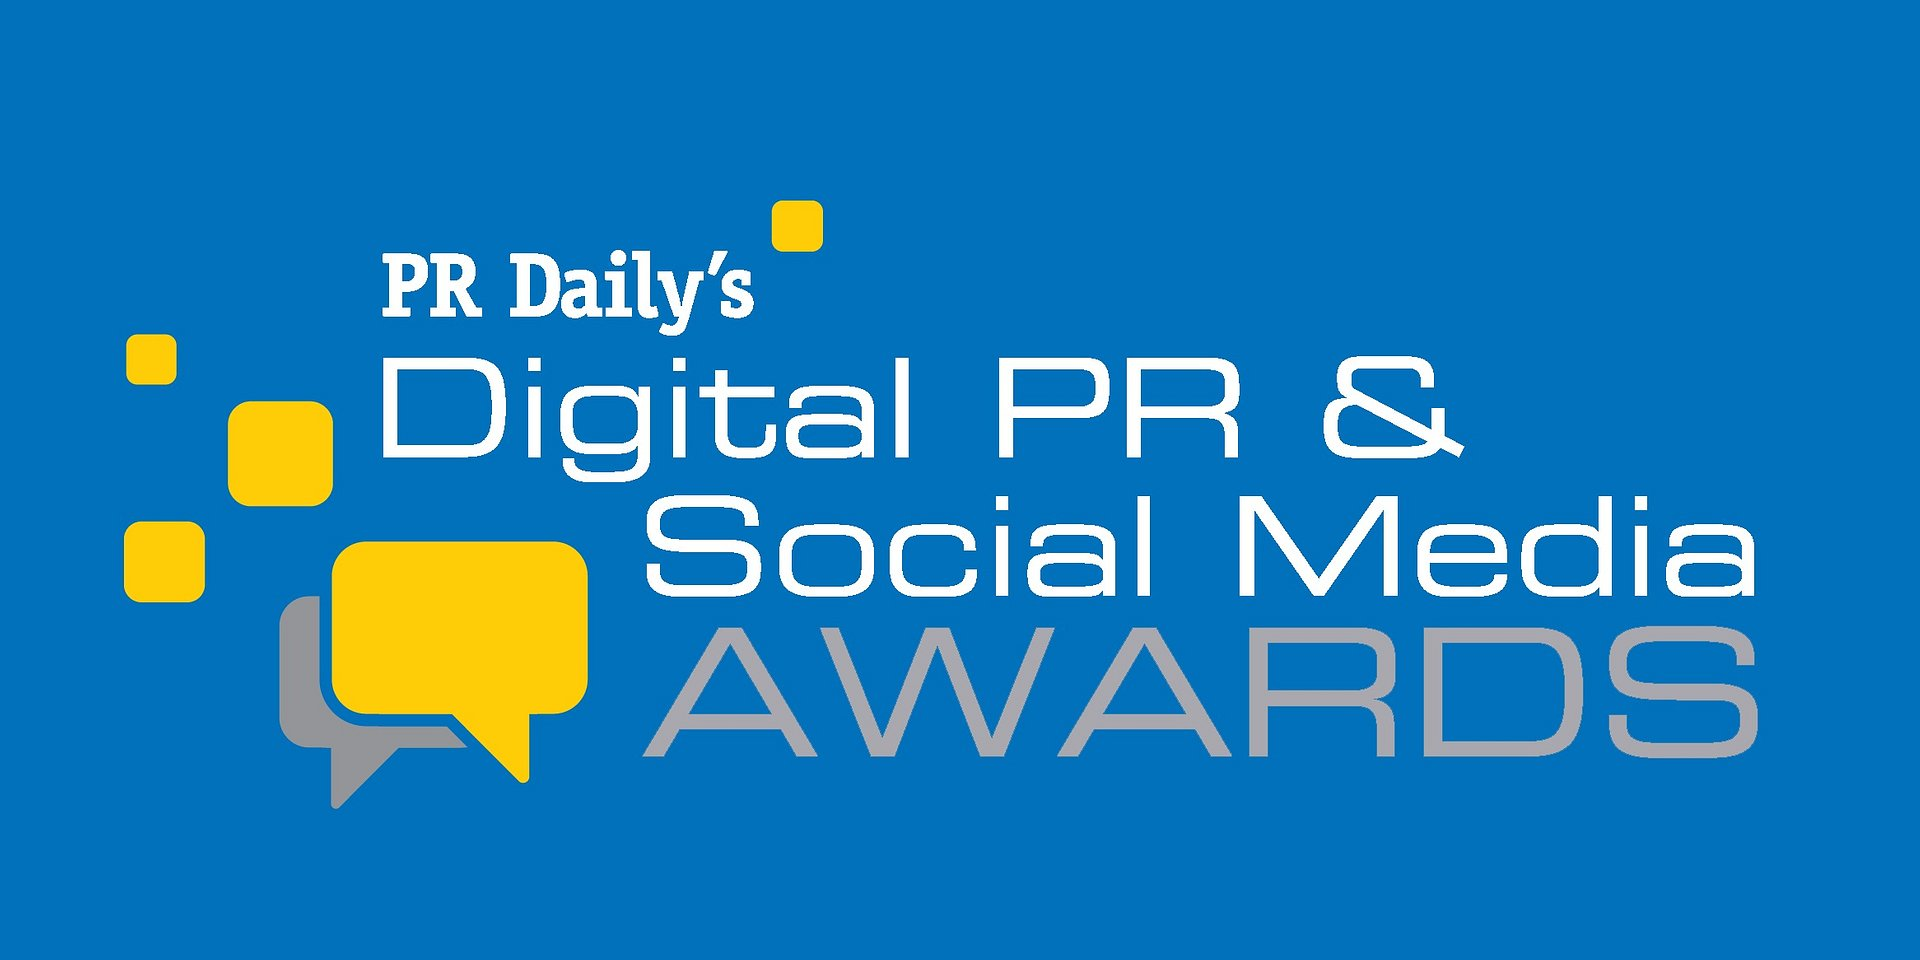 UWAGA! TVN WYRÓŻNIONA NA PR DAILY'S 2019 DIGITAL MARKETING & SOCIAL MEDIA AWARDS!